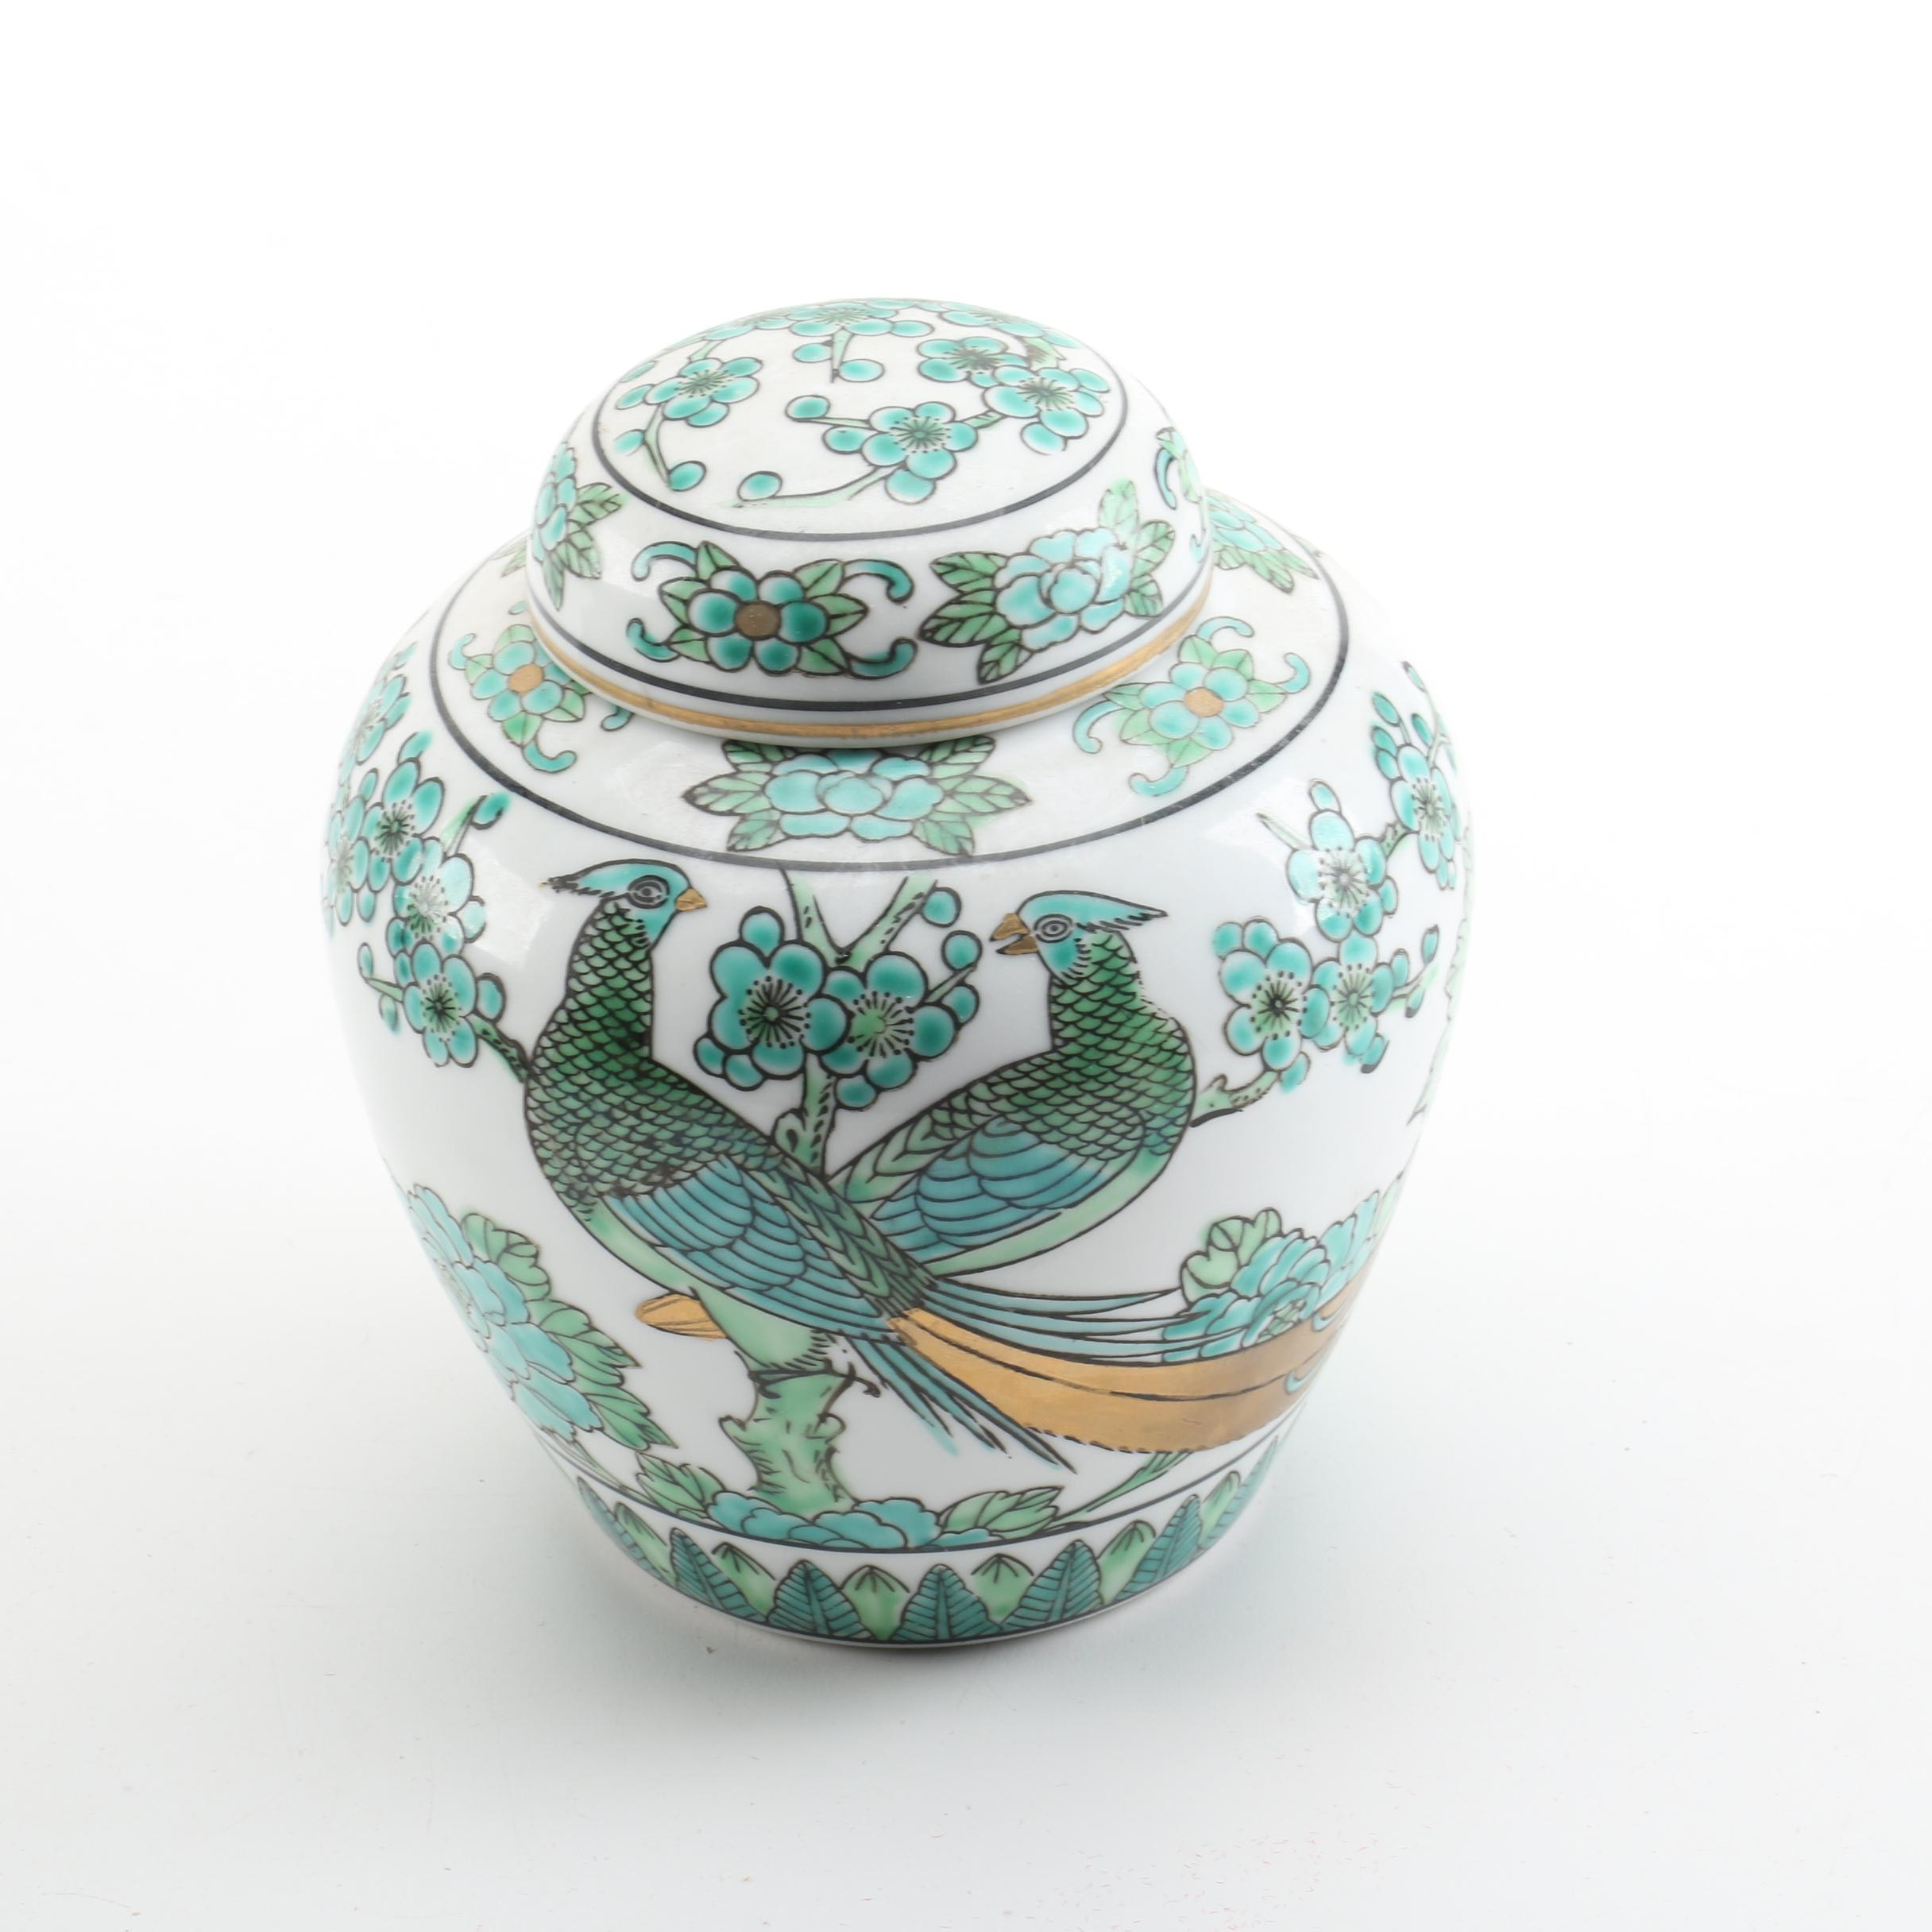 Japanese Porcelain Ginger Jar